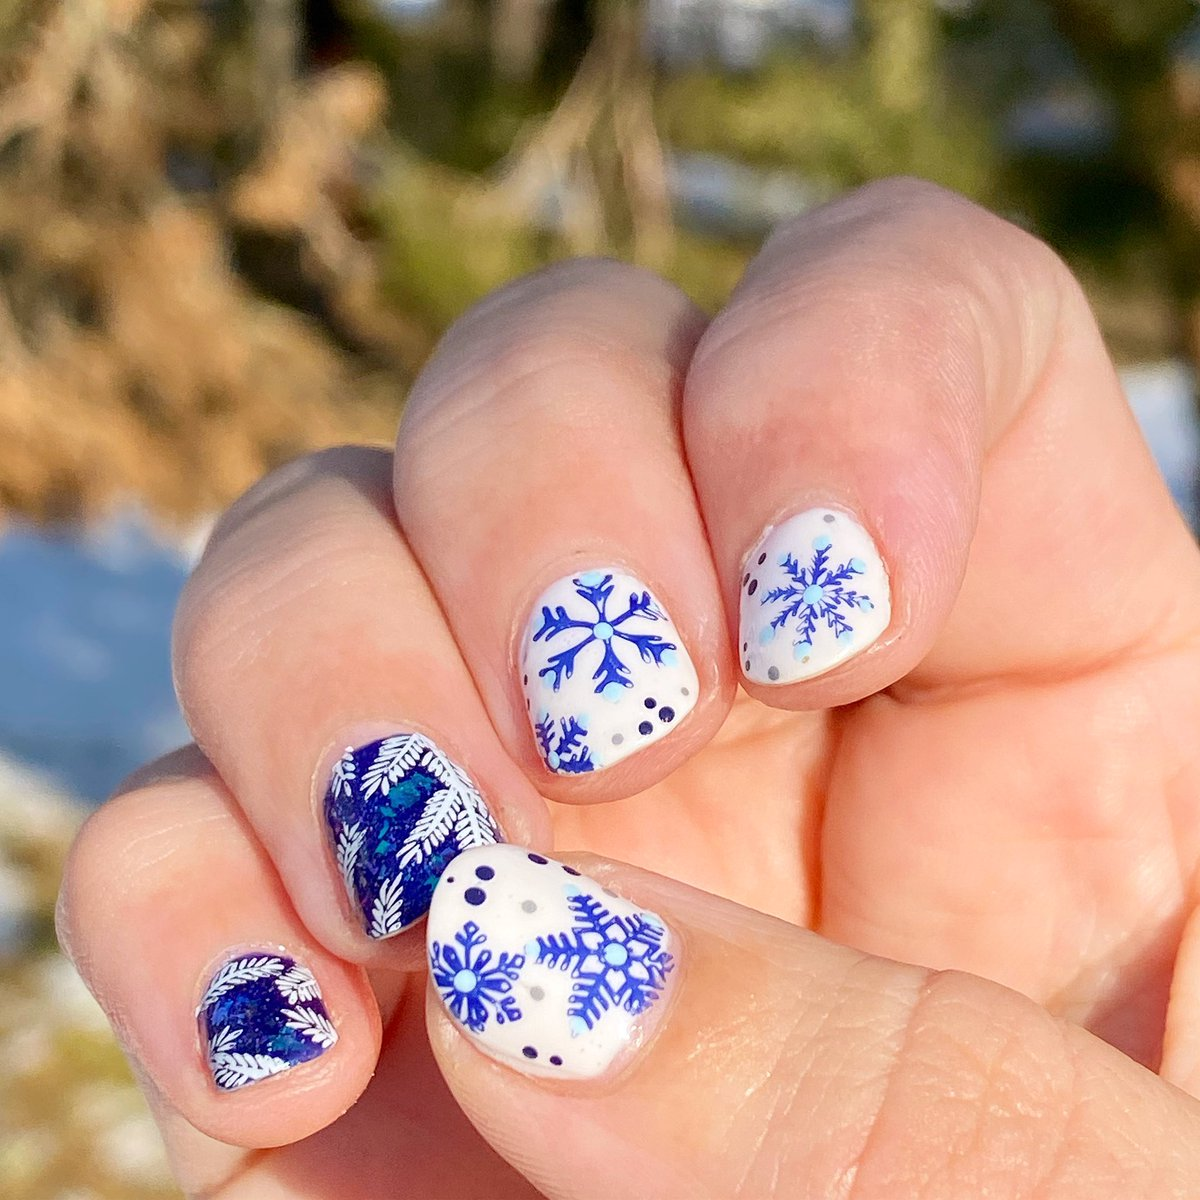 Wintery snowflake  manicure on a base of @OPI_PRODUCTS Funny Bunny with chilly  evergreen  accent nails on @ChinaGlaze Grover It  . #snowflakenails #winterynails #notdpic.twitter.com/s5bZRNsTBJ